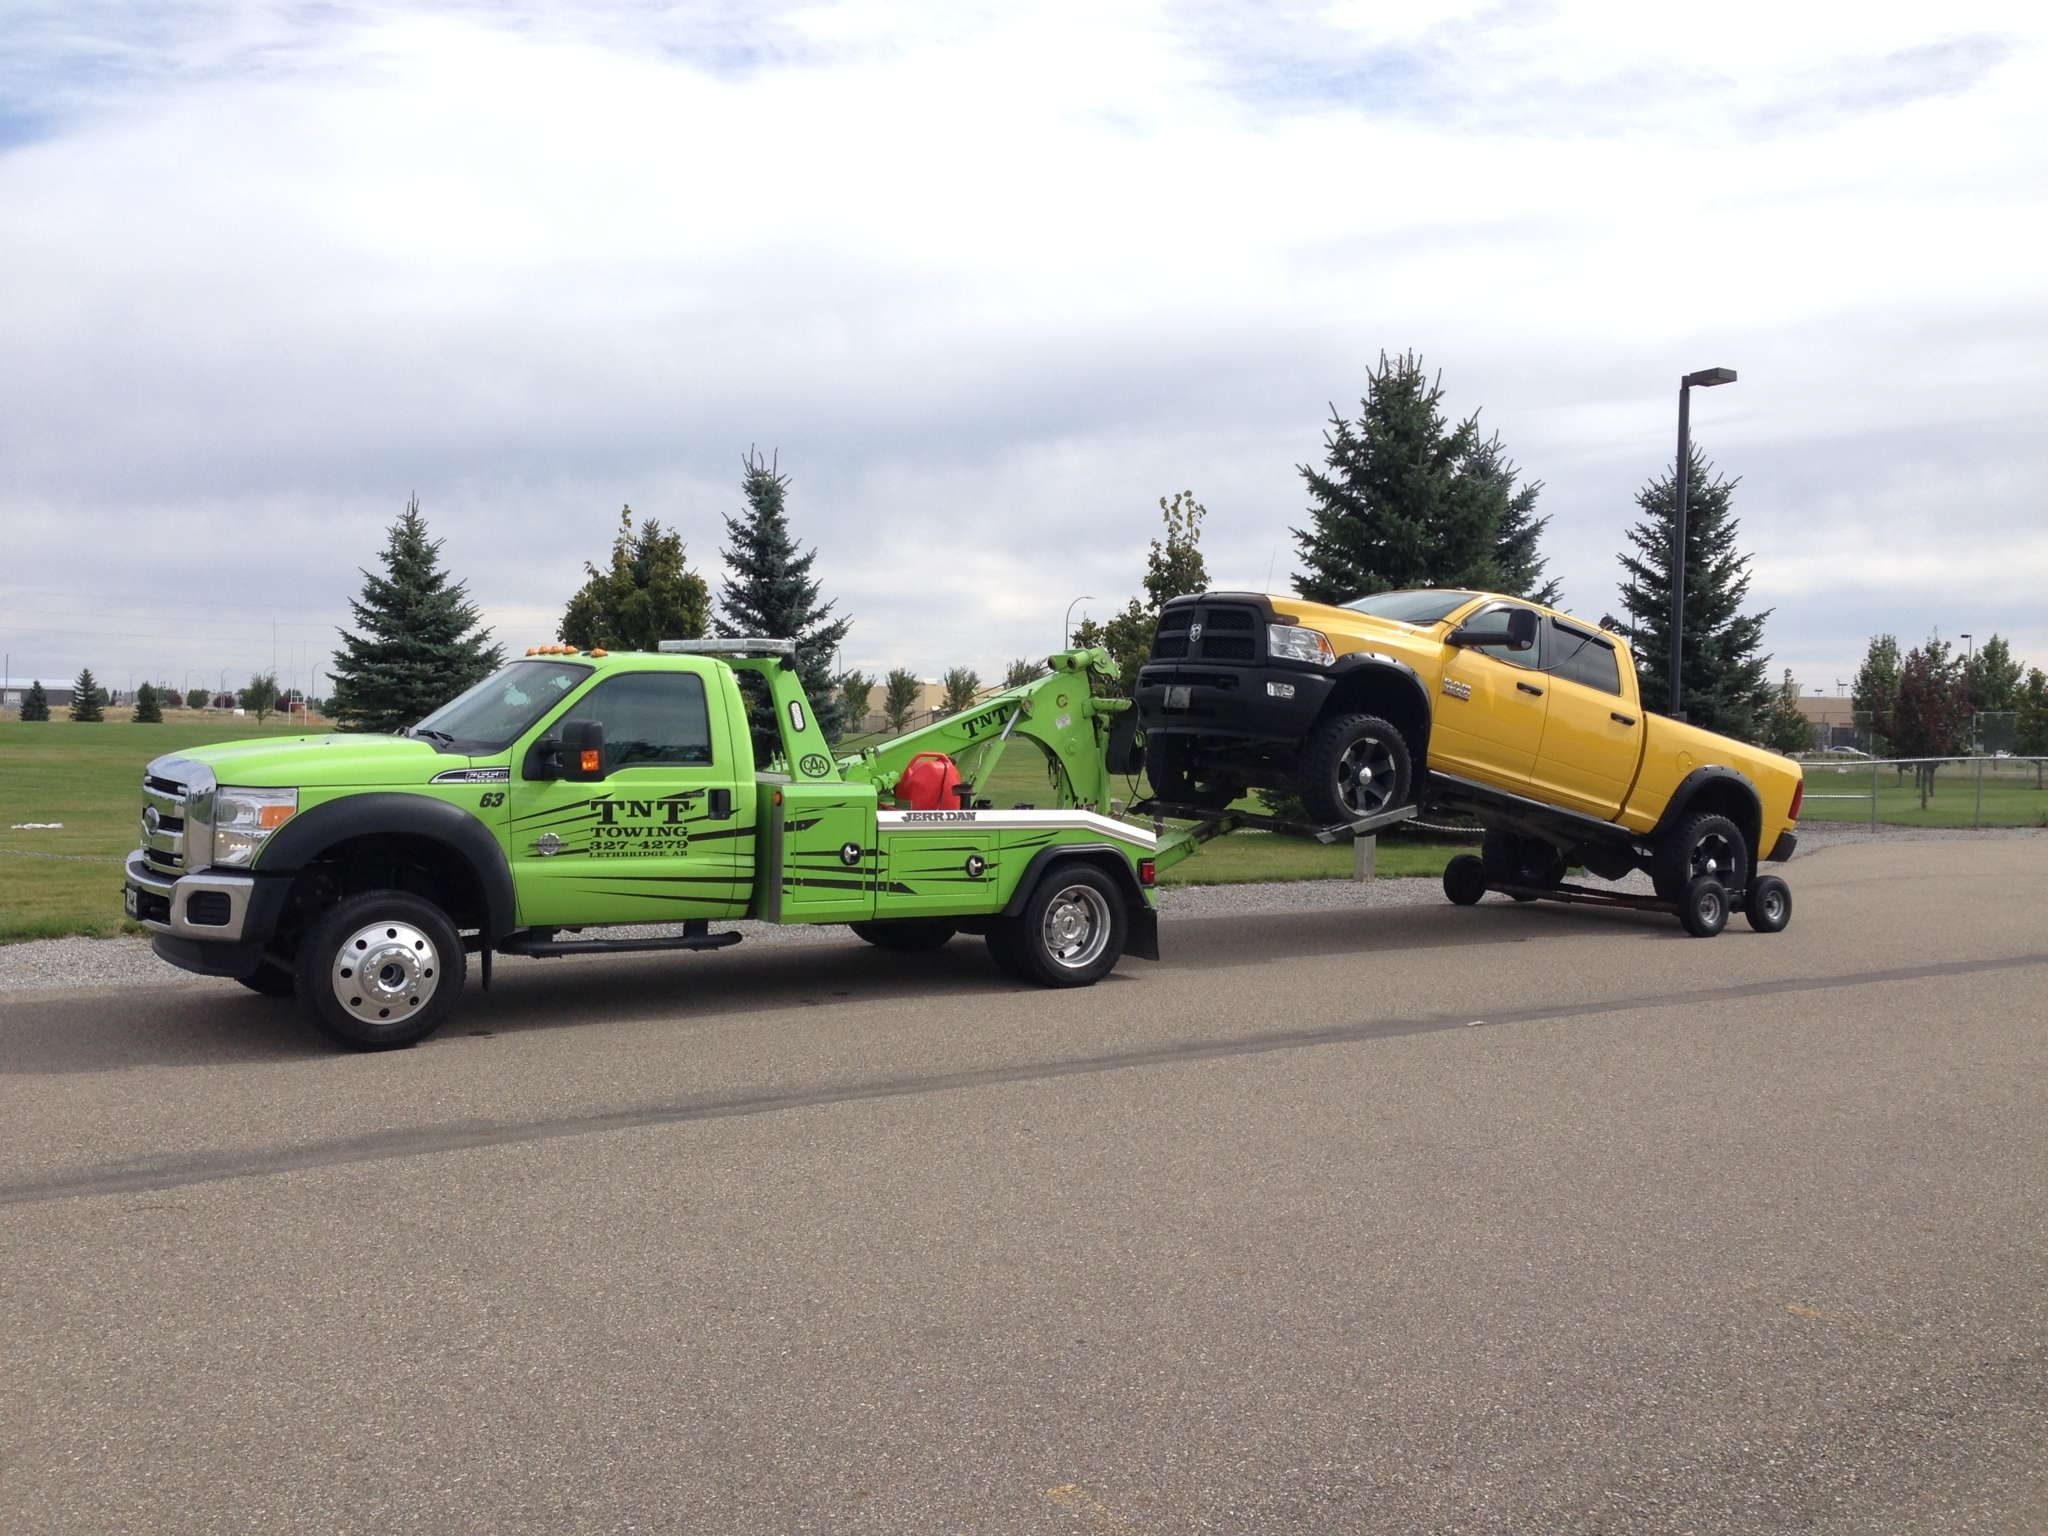 TNT Towing and Salvage Disposal in Lethbridge